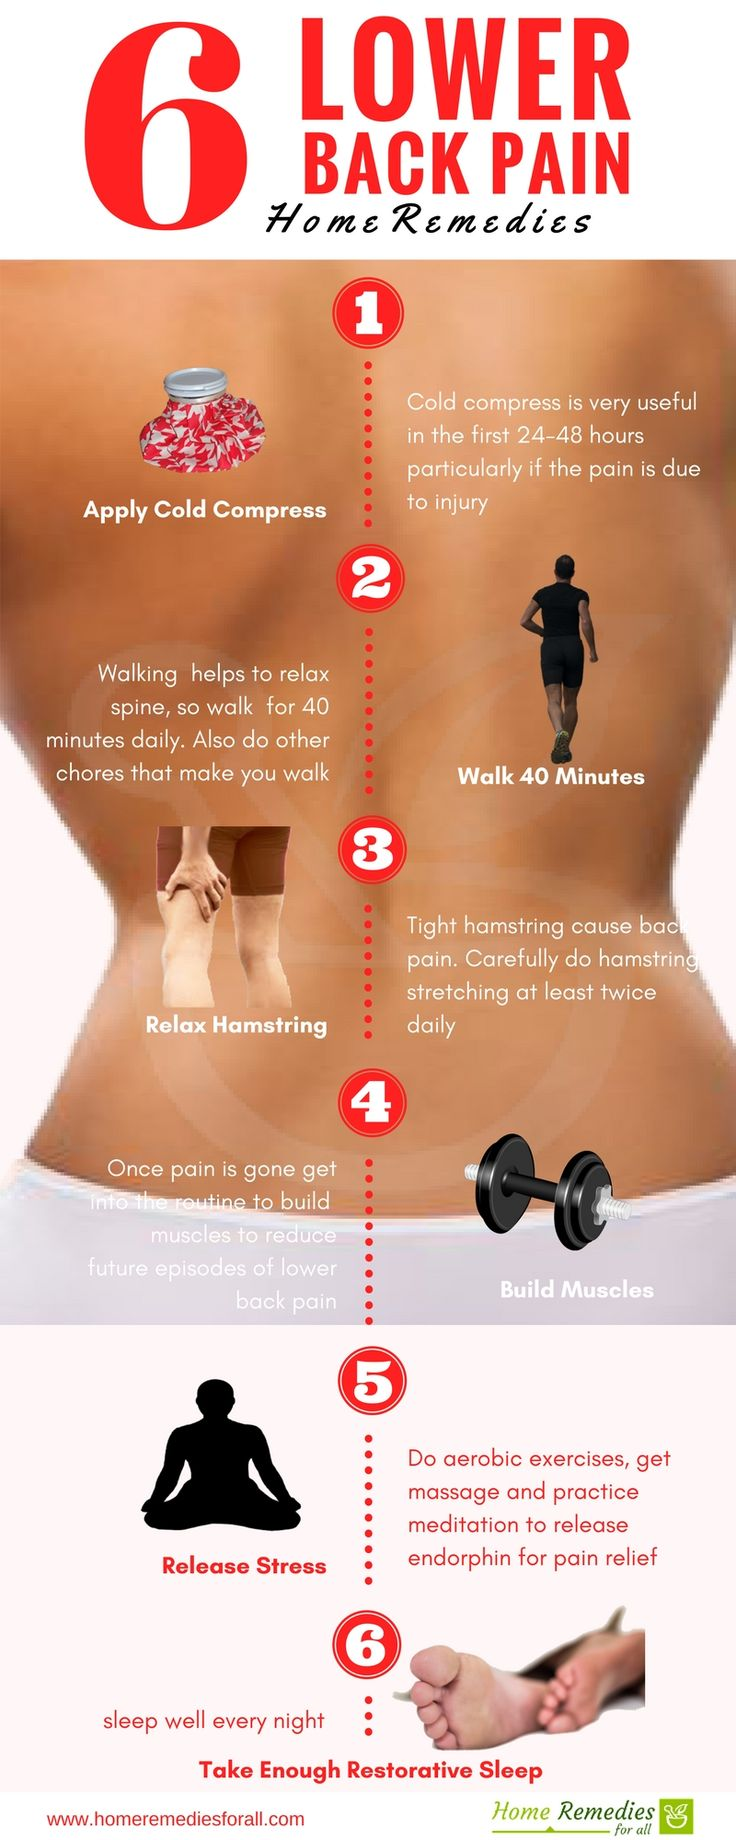 Use These Effective Home Remedies For Back Pain And Fell